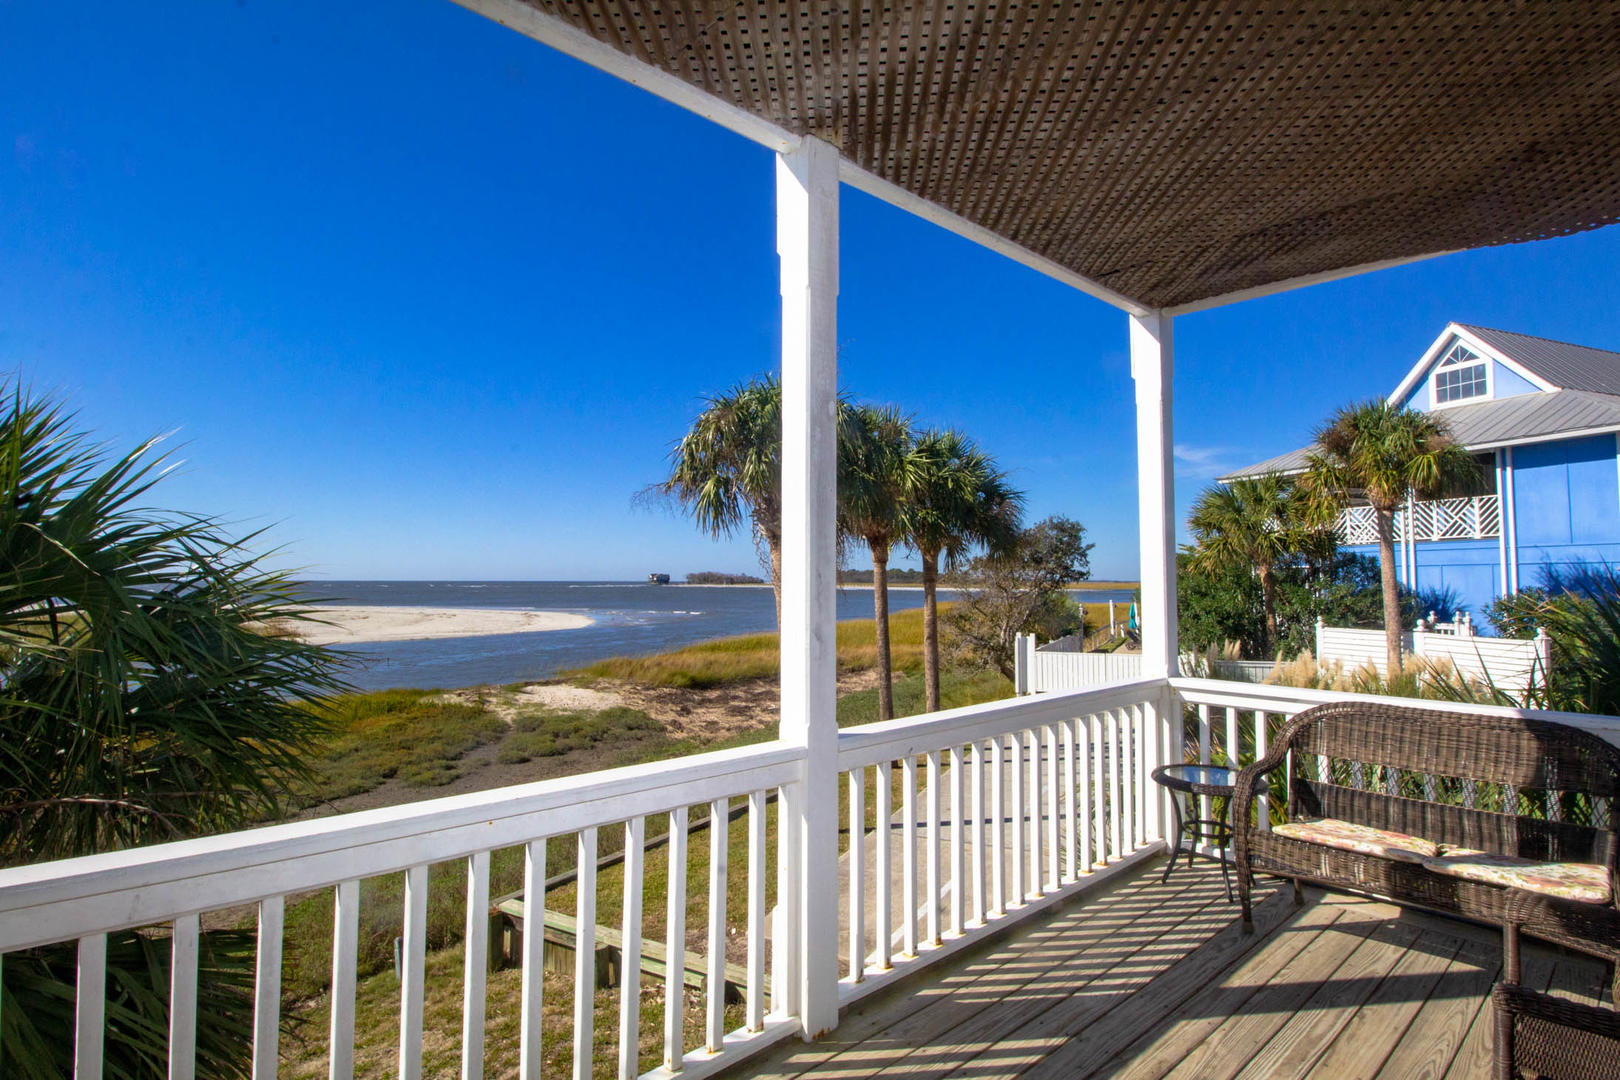 Porch overlooking the water at 12 Sea Mist vacation rental